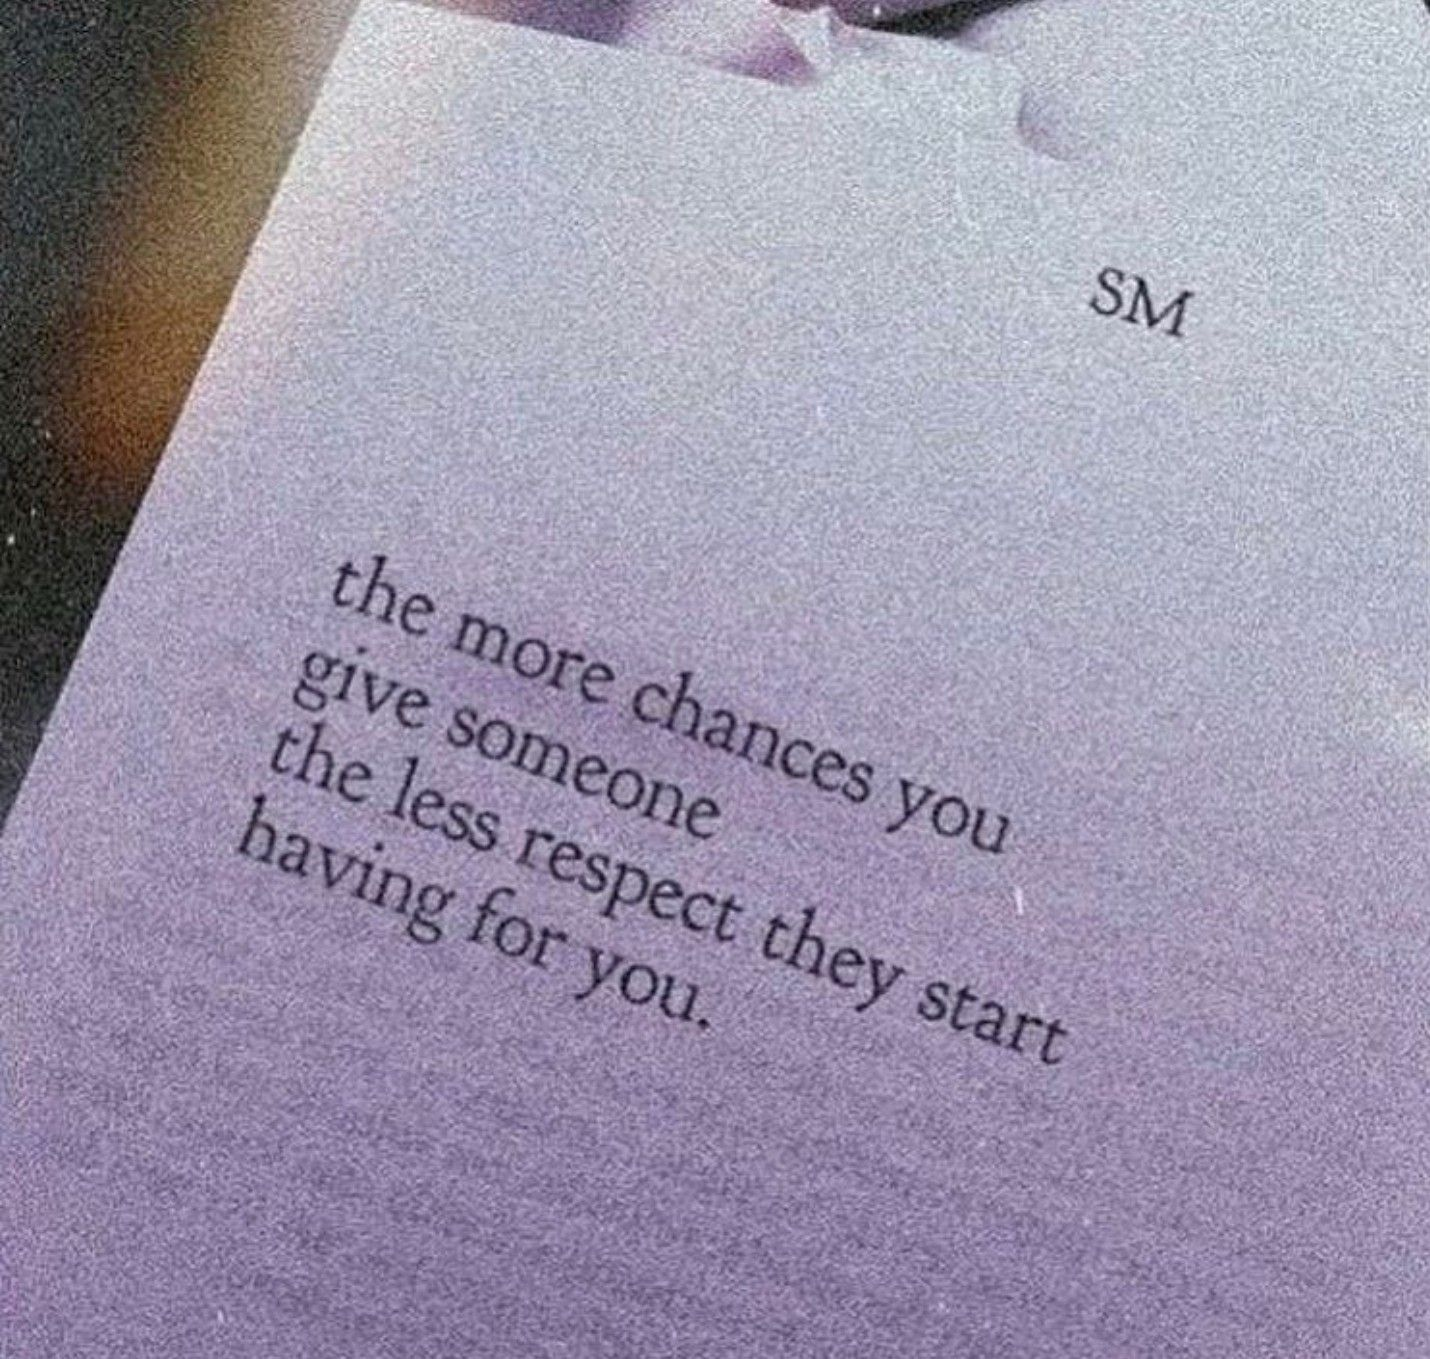 Pin By Ahxan Rajpoot On Quotes Nd Notes In 2020 Book Quotes Quotes Deep Feelings Meaningful Quotes